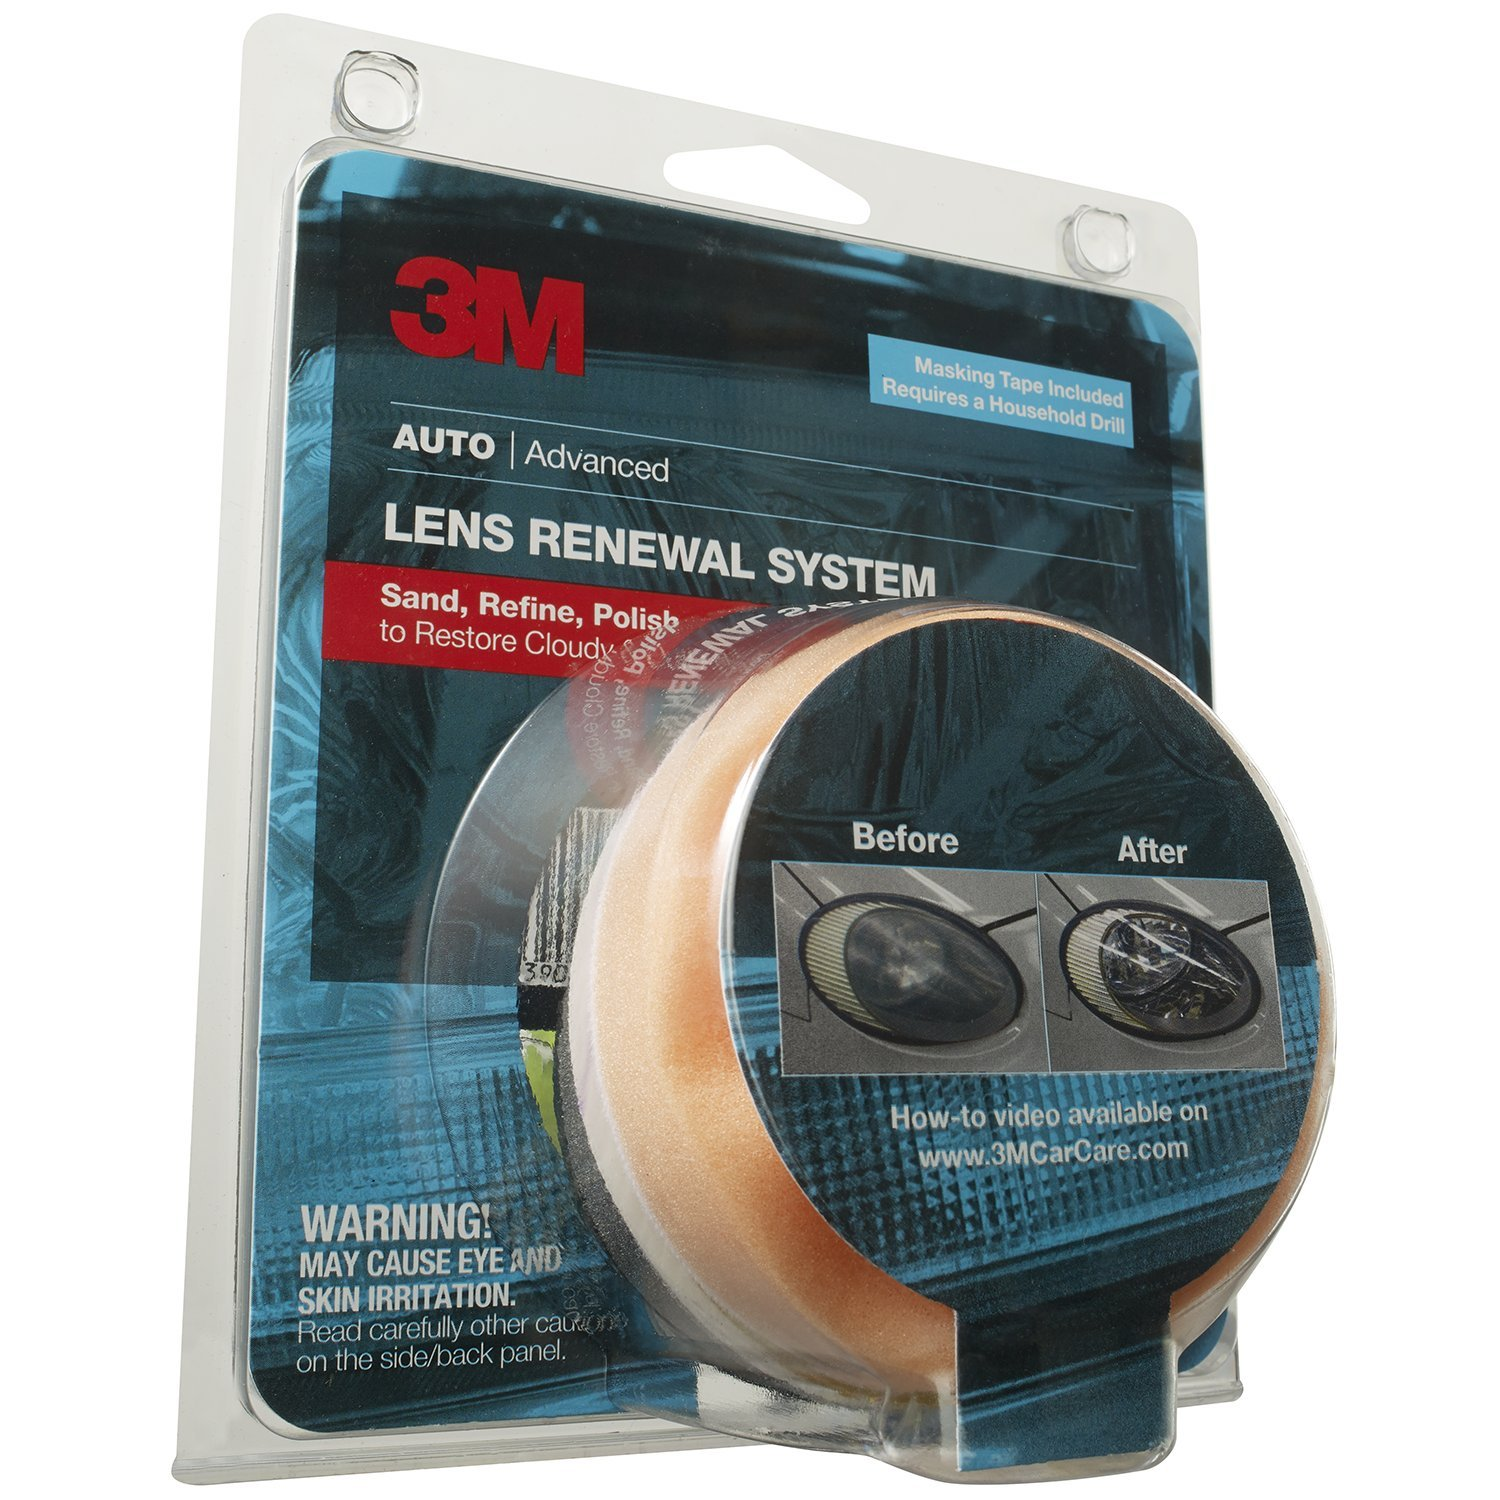 3M Lens Renewal System, Includes Masking Tape, Drill Application, 1 Kit 81L-8cg2EYL